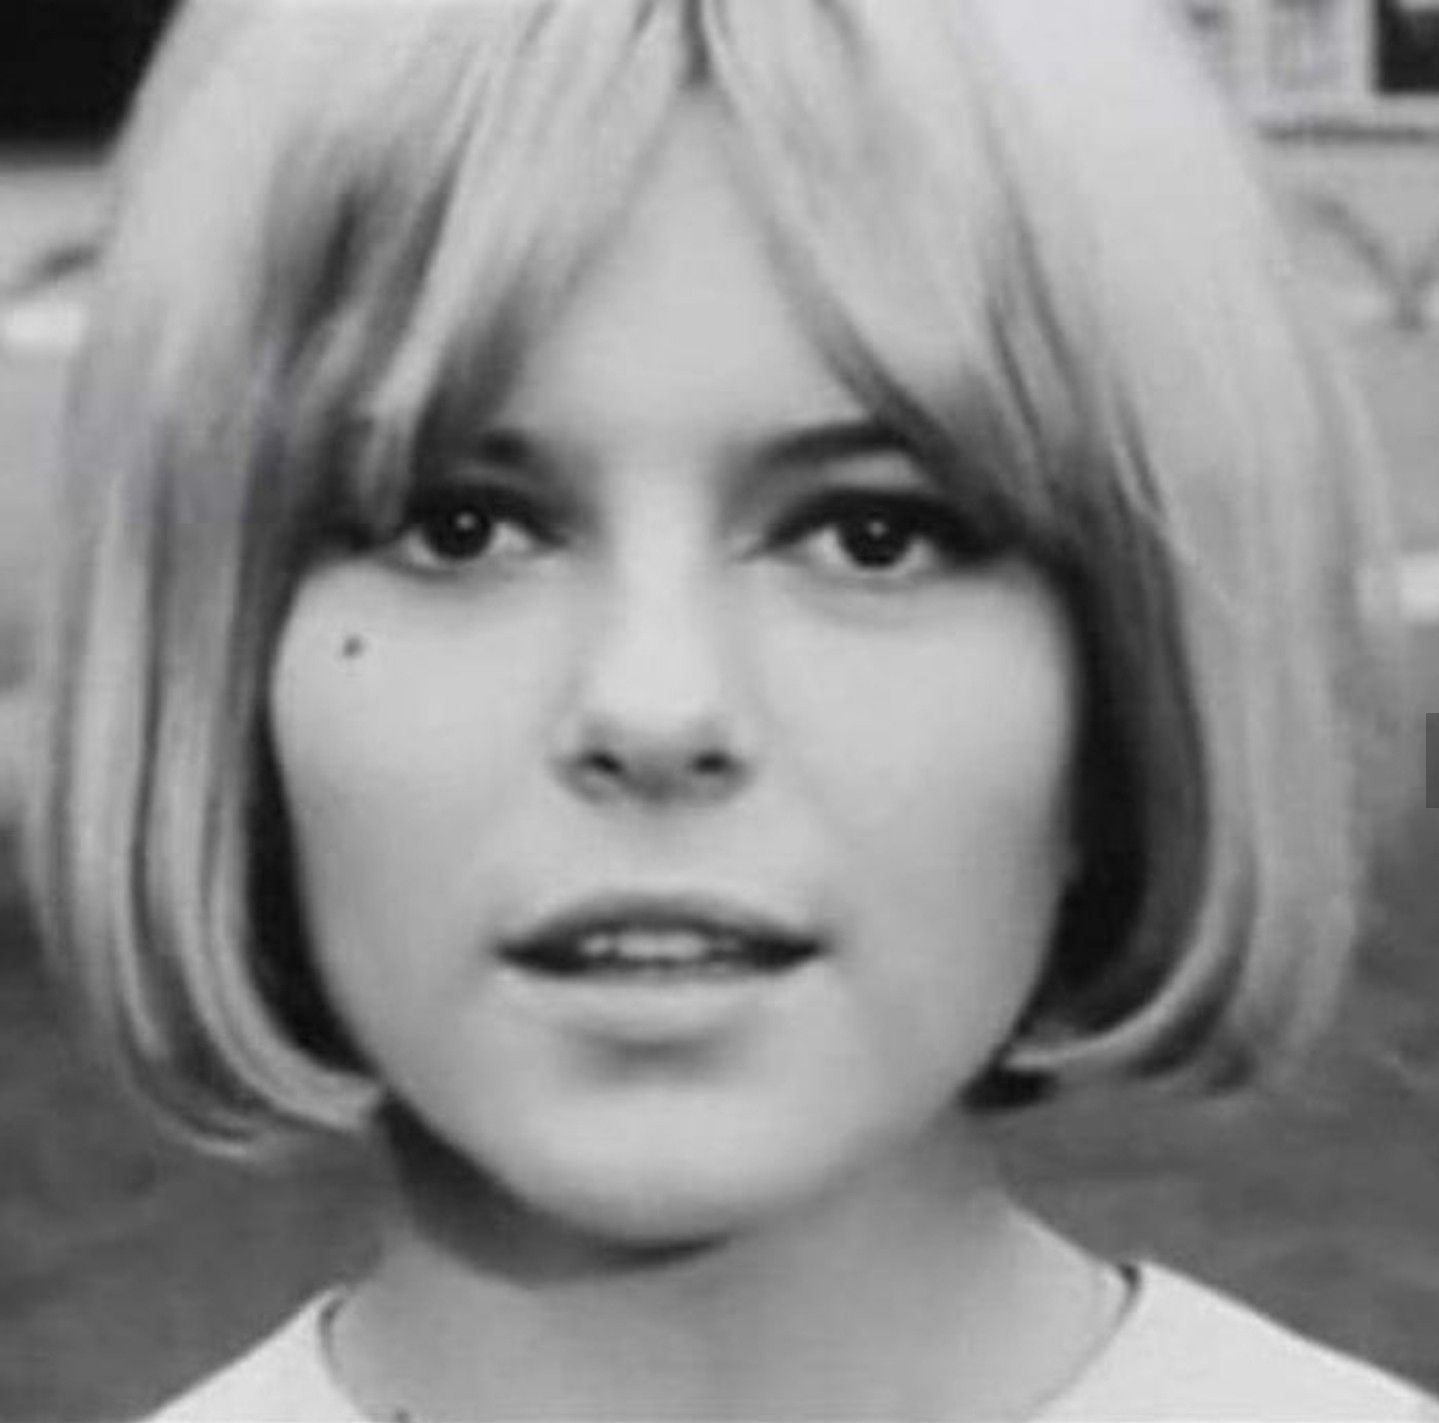 Pin by Dylan Cree on France gall in 2019 France gall